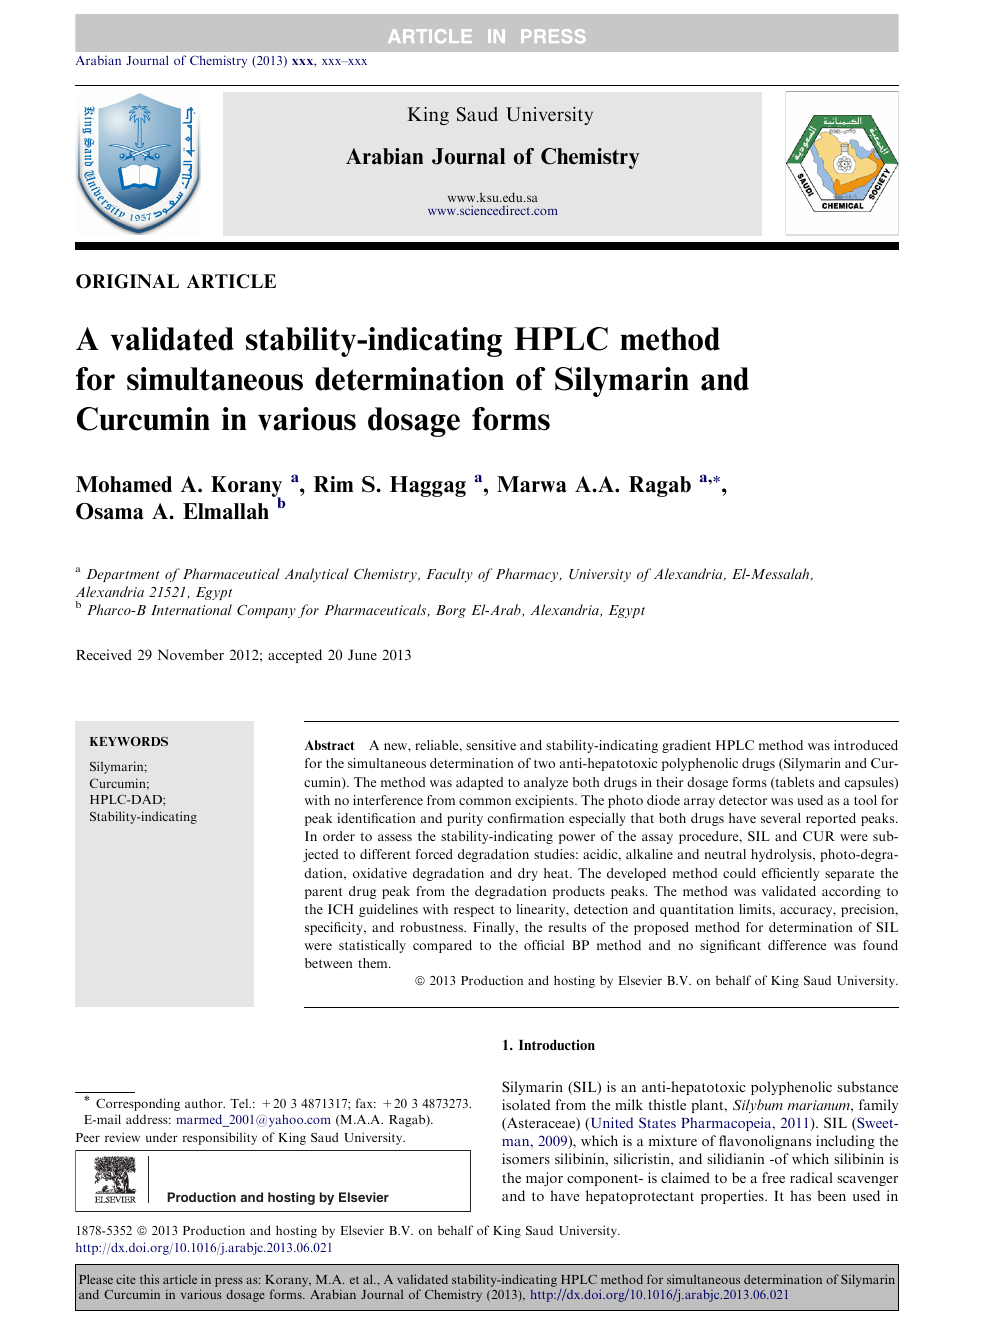 A validated stability-indicating HPLC method for simultaneous